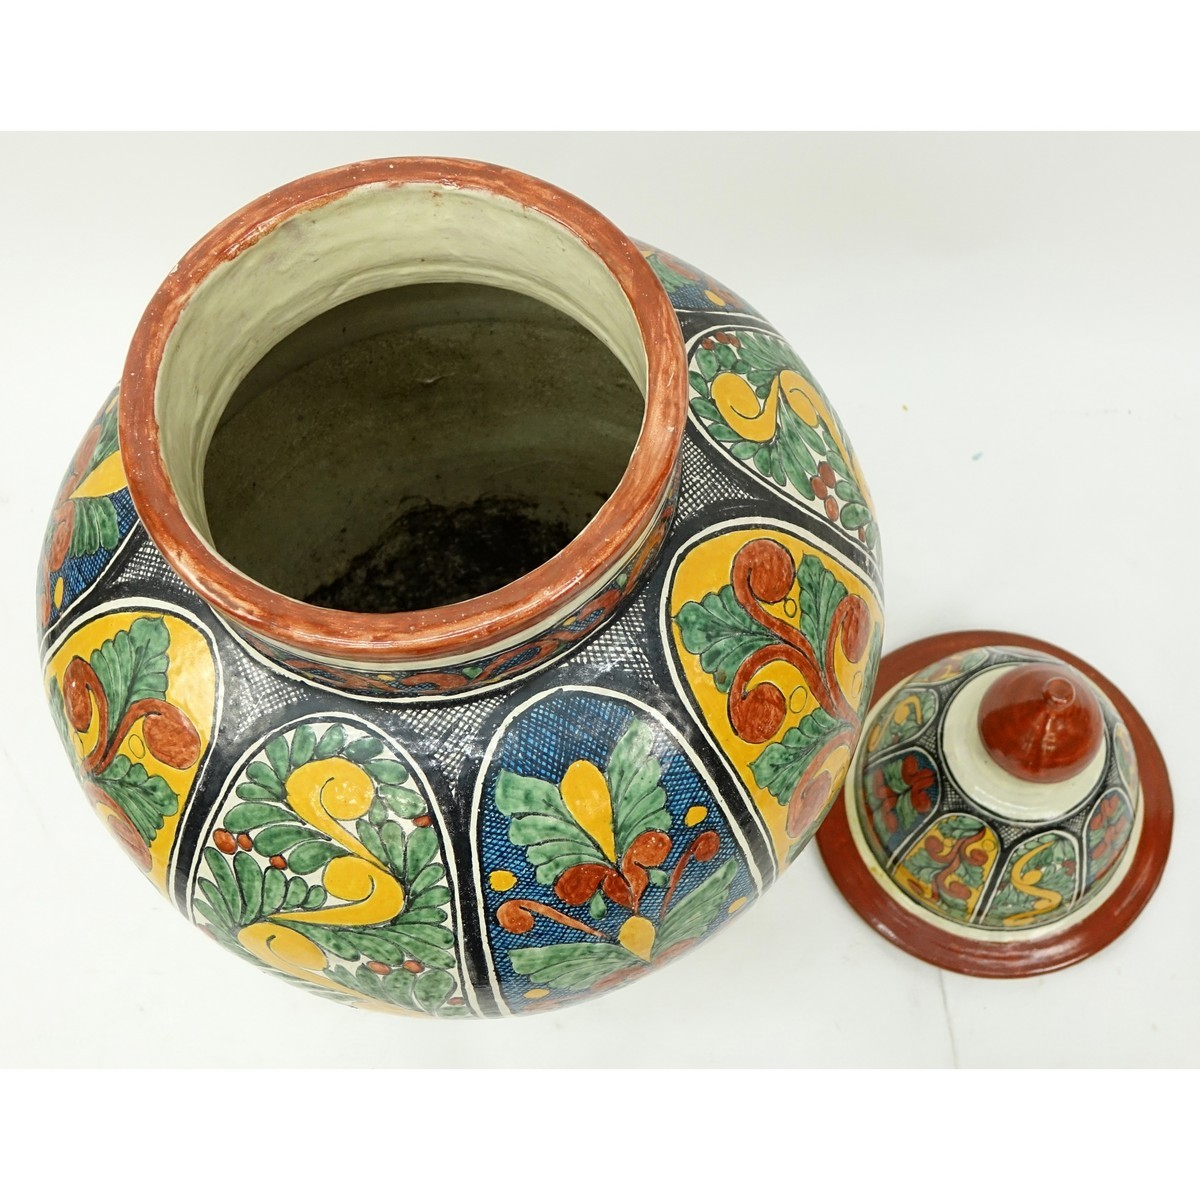 Large Italian Majolica Pottery Covered Urn. Unsigned. Chips at base, overall good condition. Measur